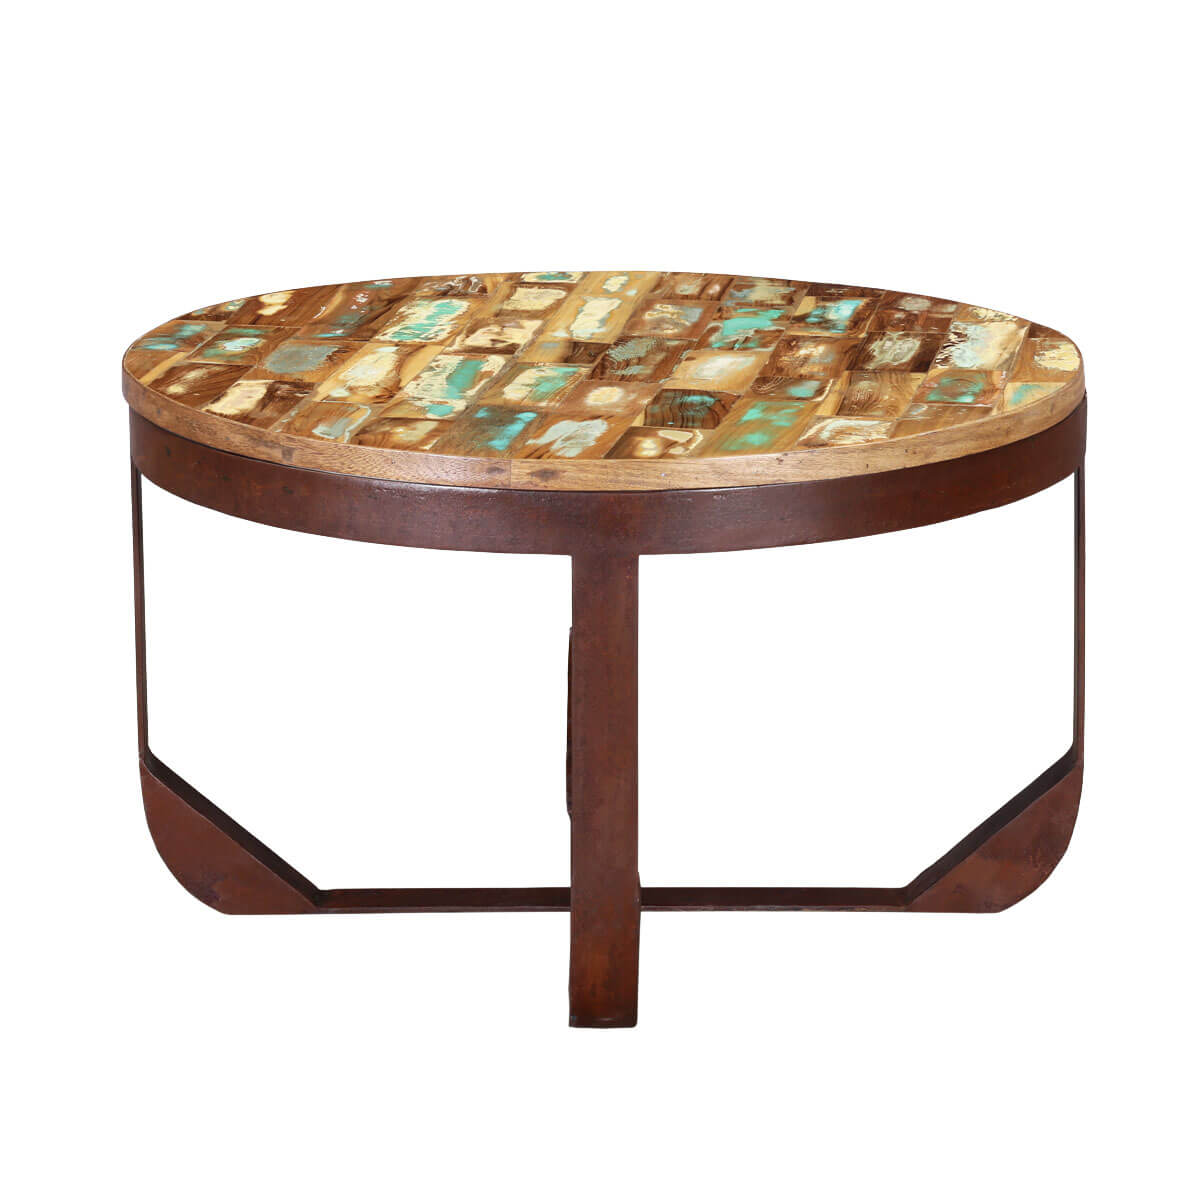 Table Round Industrial Coffee Table Gratifying Ballard: Reclaimed Wood Industrial Round Coffee Table